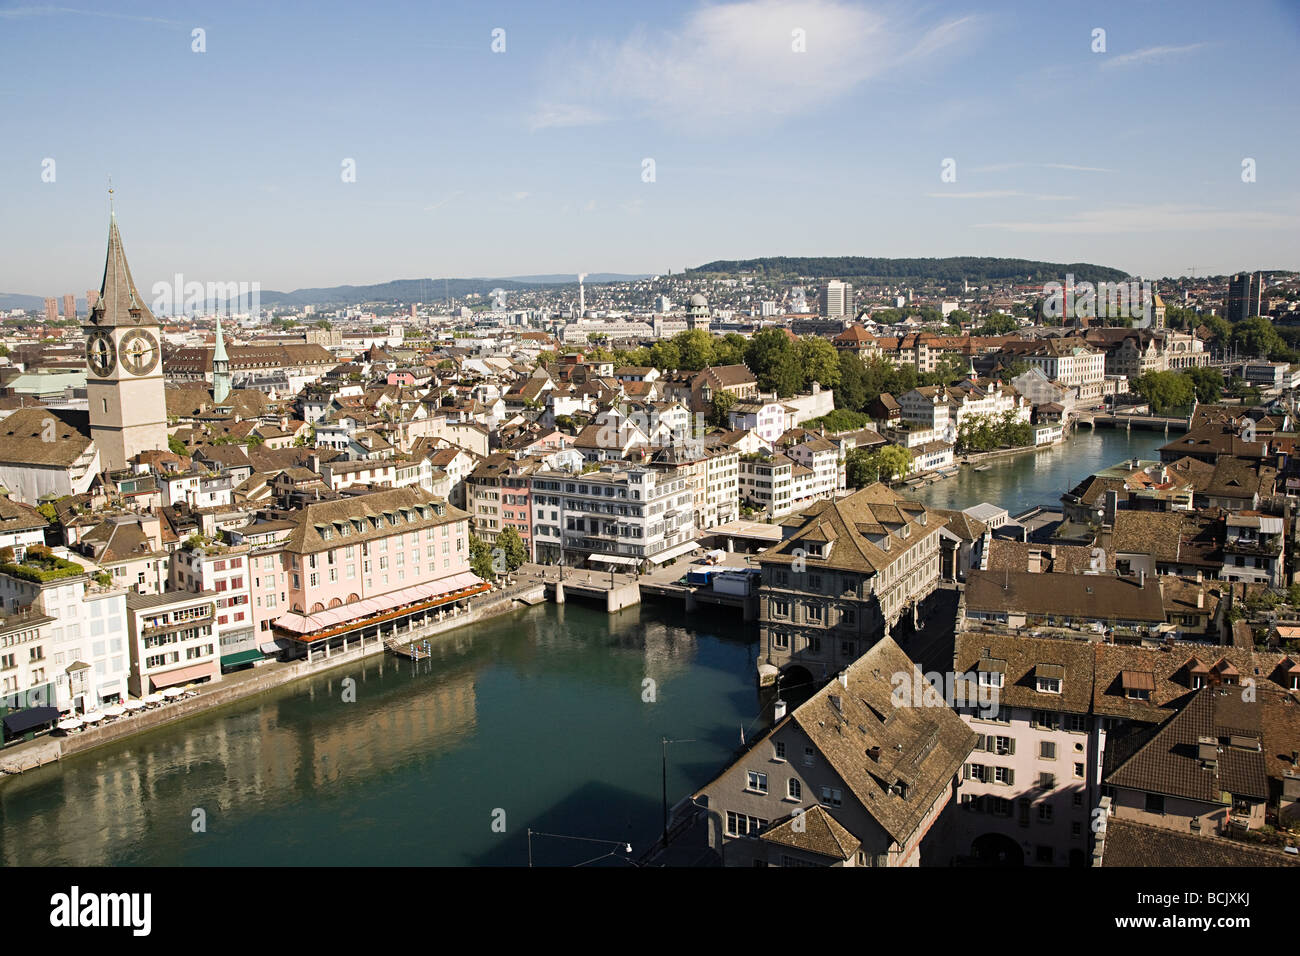 Elevated view of zurich - Stock Image